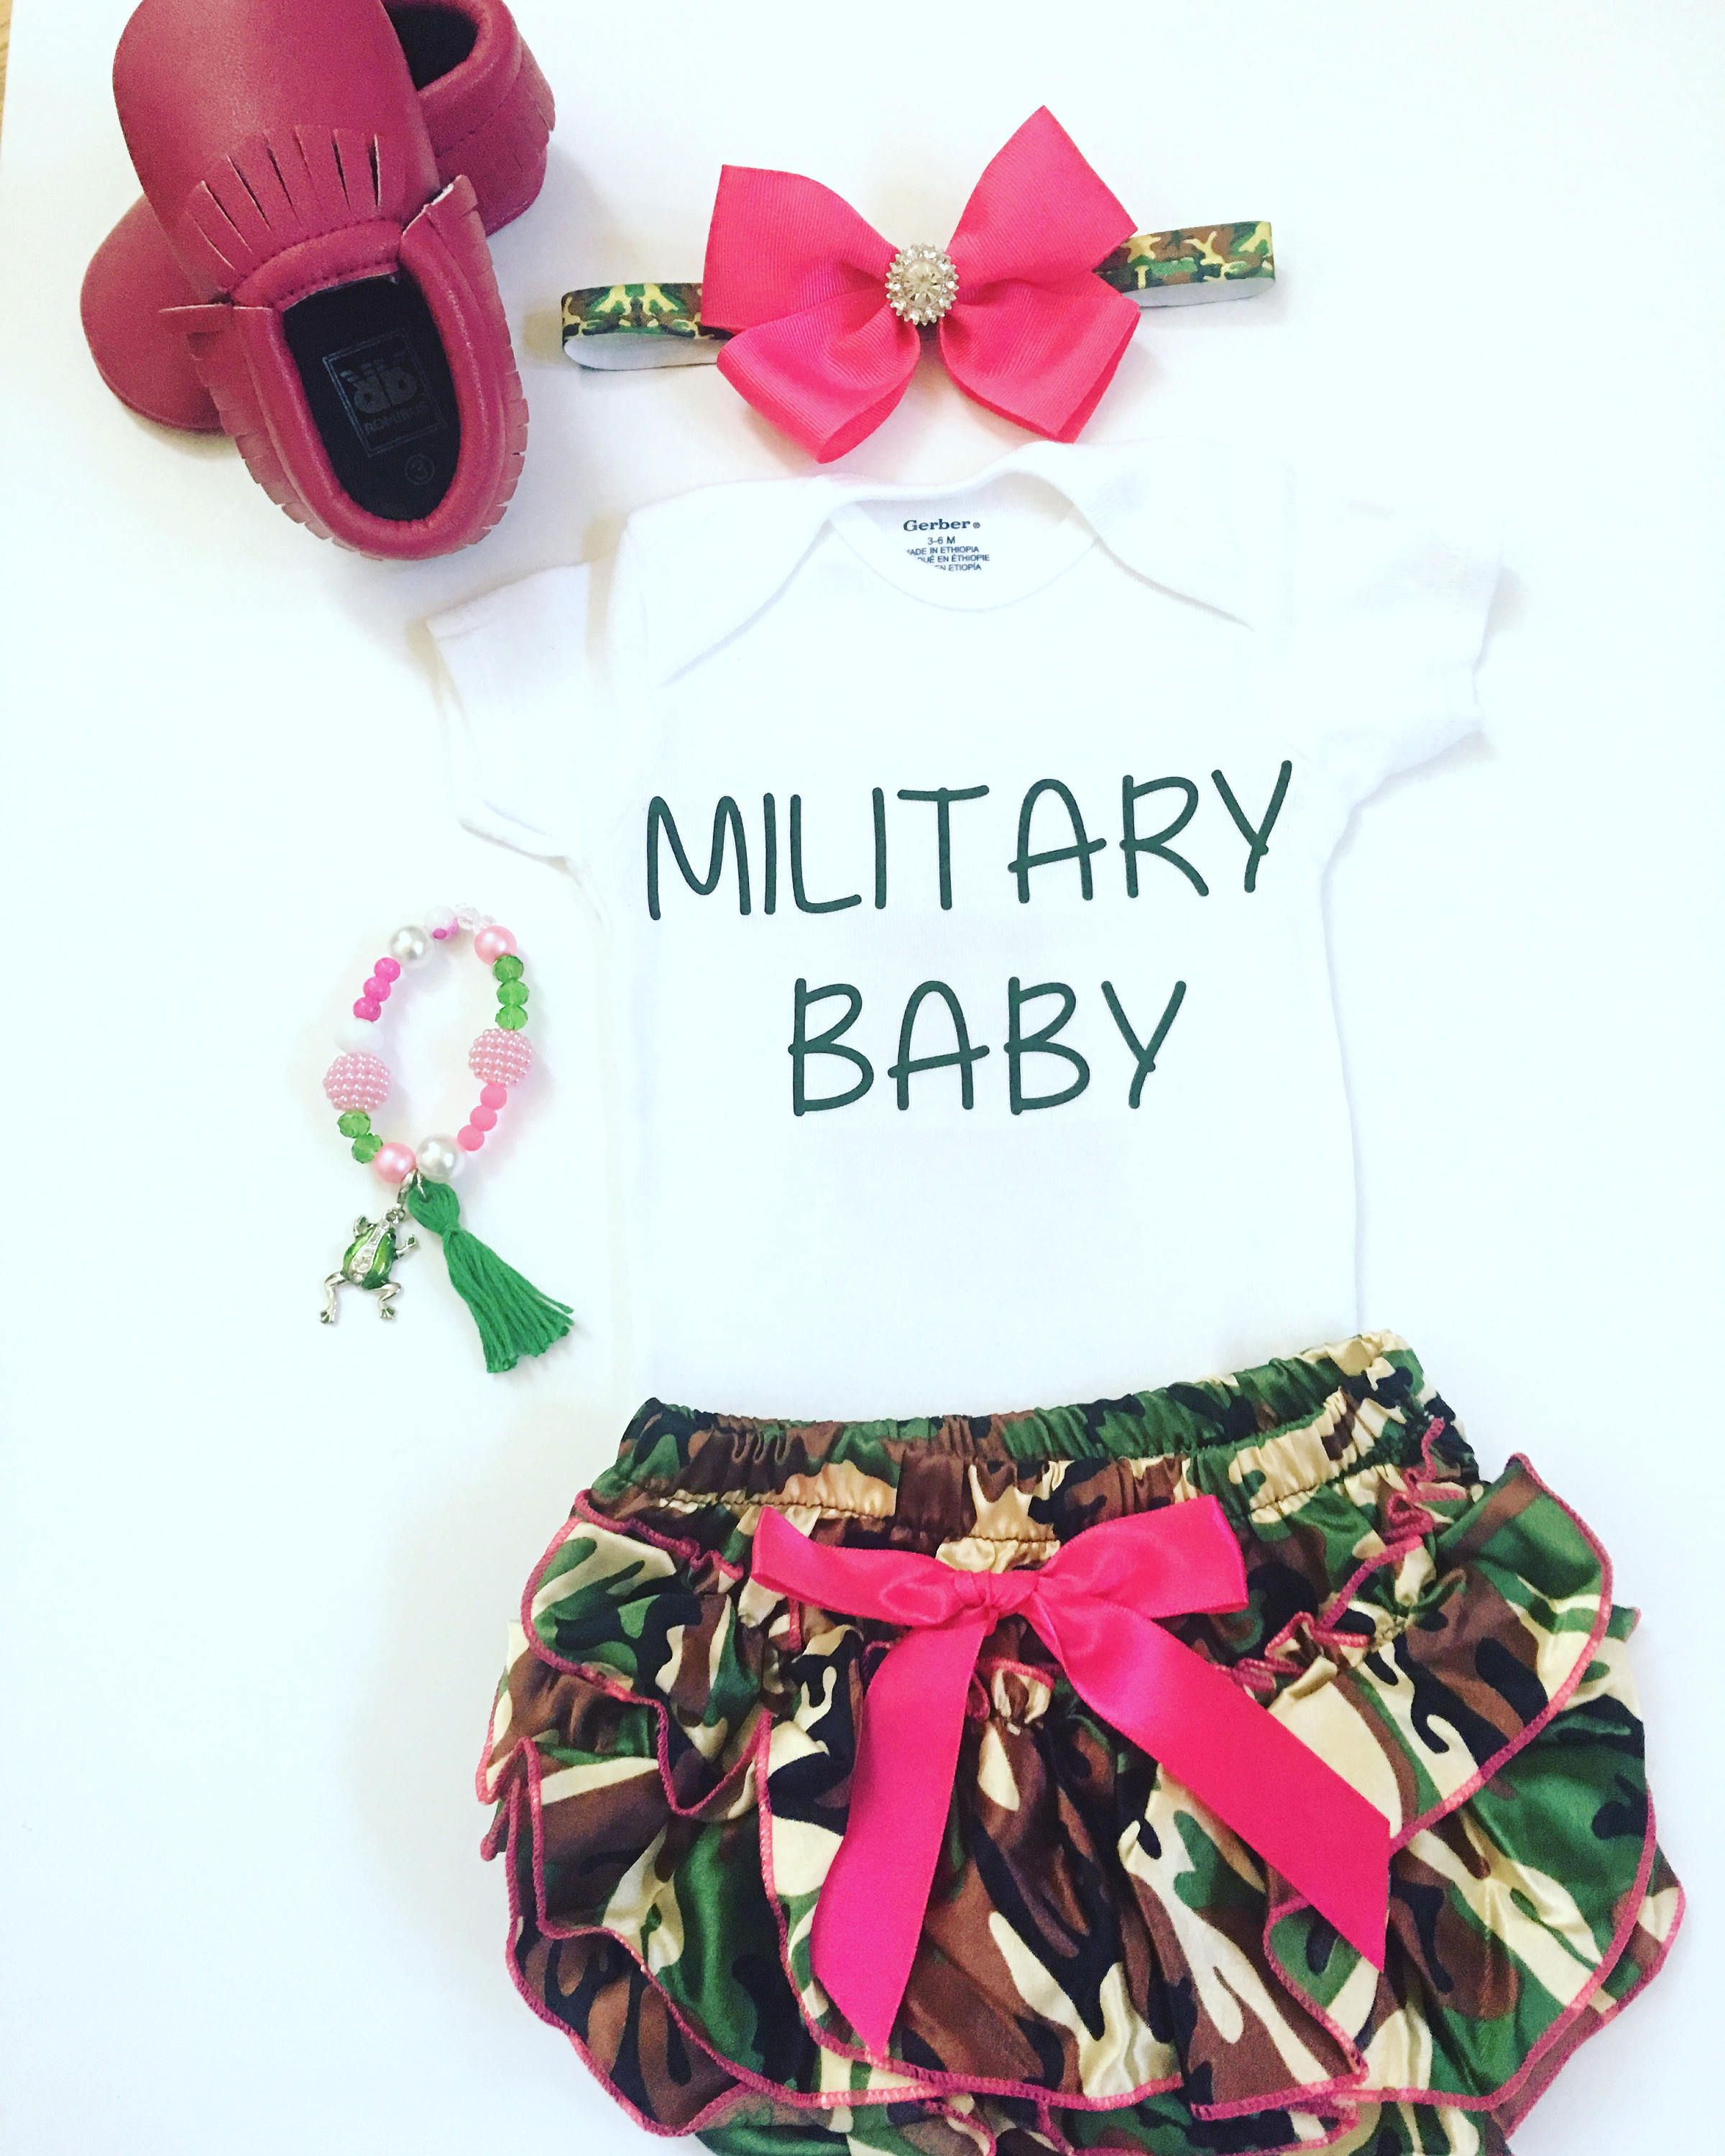 065c99e8 Military Baby Bodysuit, Military Shirts For Kids, Military Shirts, Military  Kids, Military Tee Shirts, Soldier Bodysuits, Deployment Shirts #ad